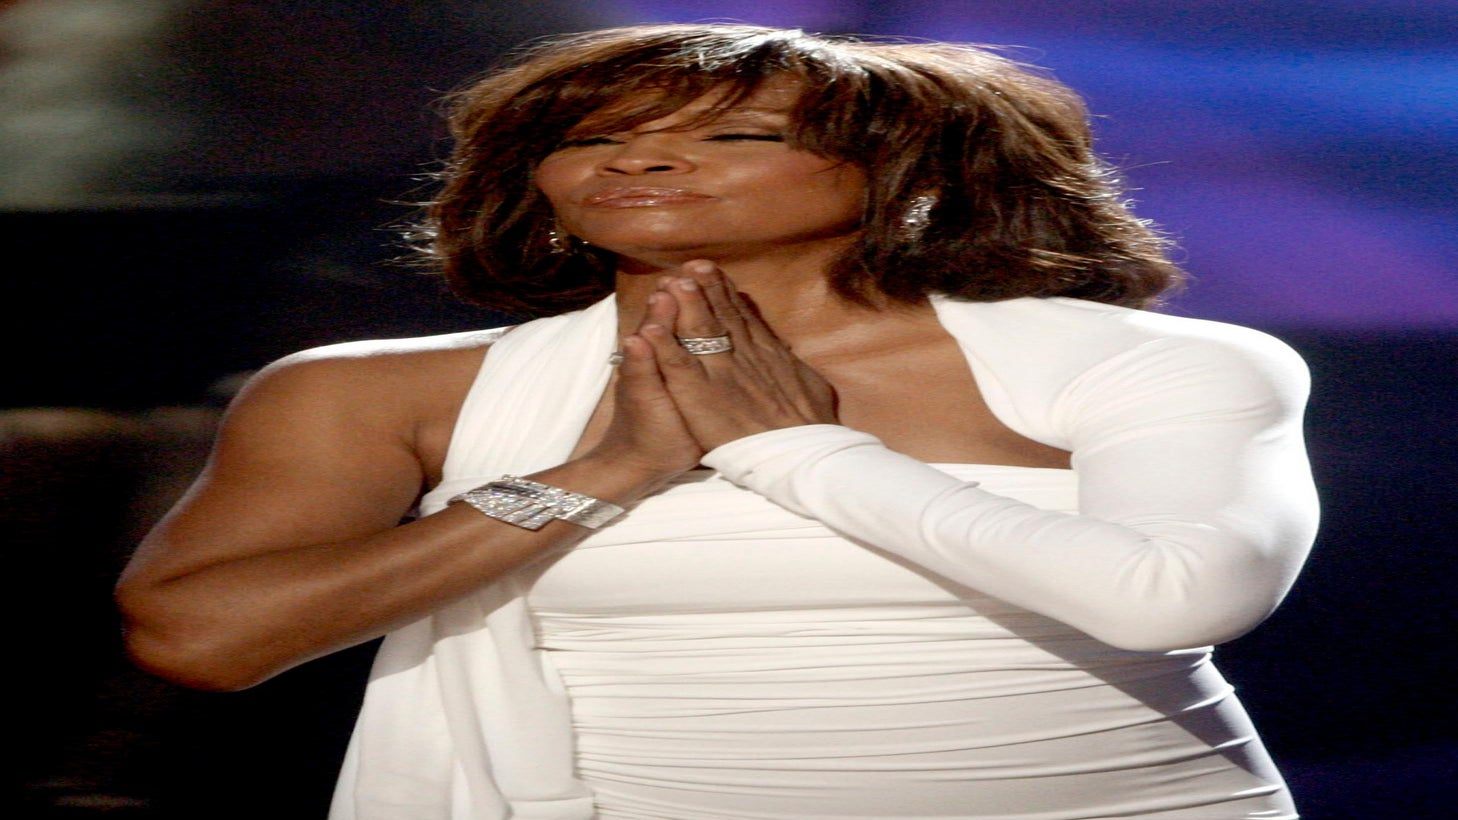 Bobby Brown and Robyn Crawford Roles Cast in Whitney Houston Biopic